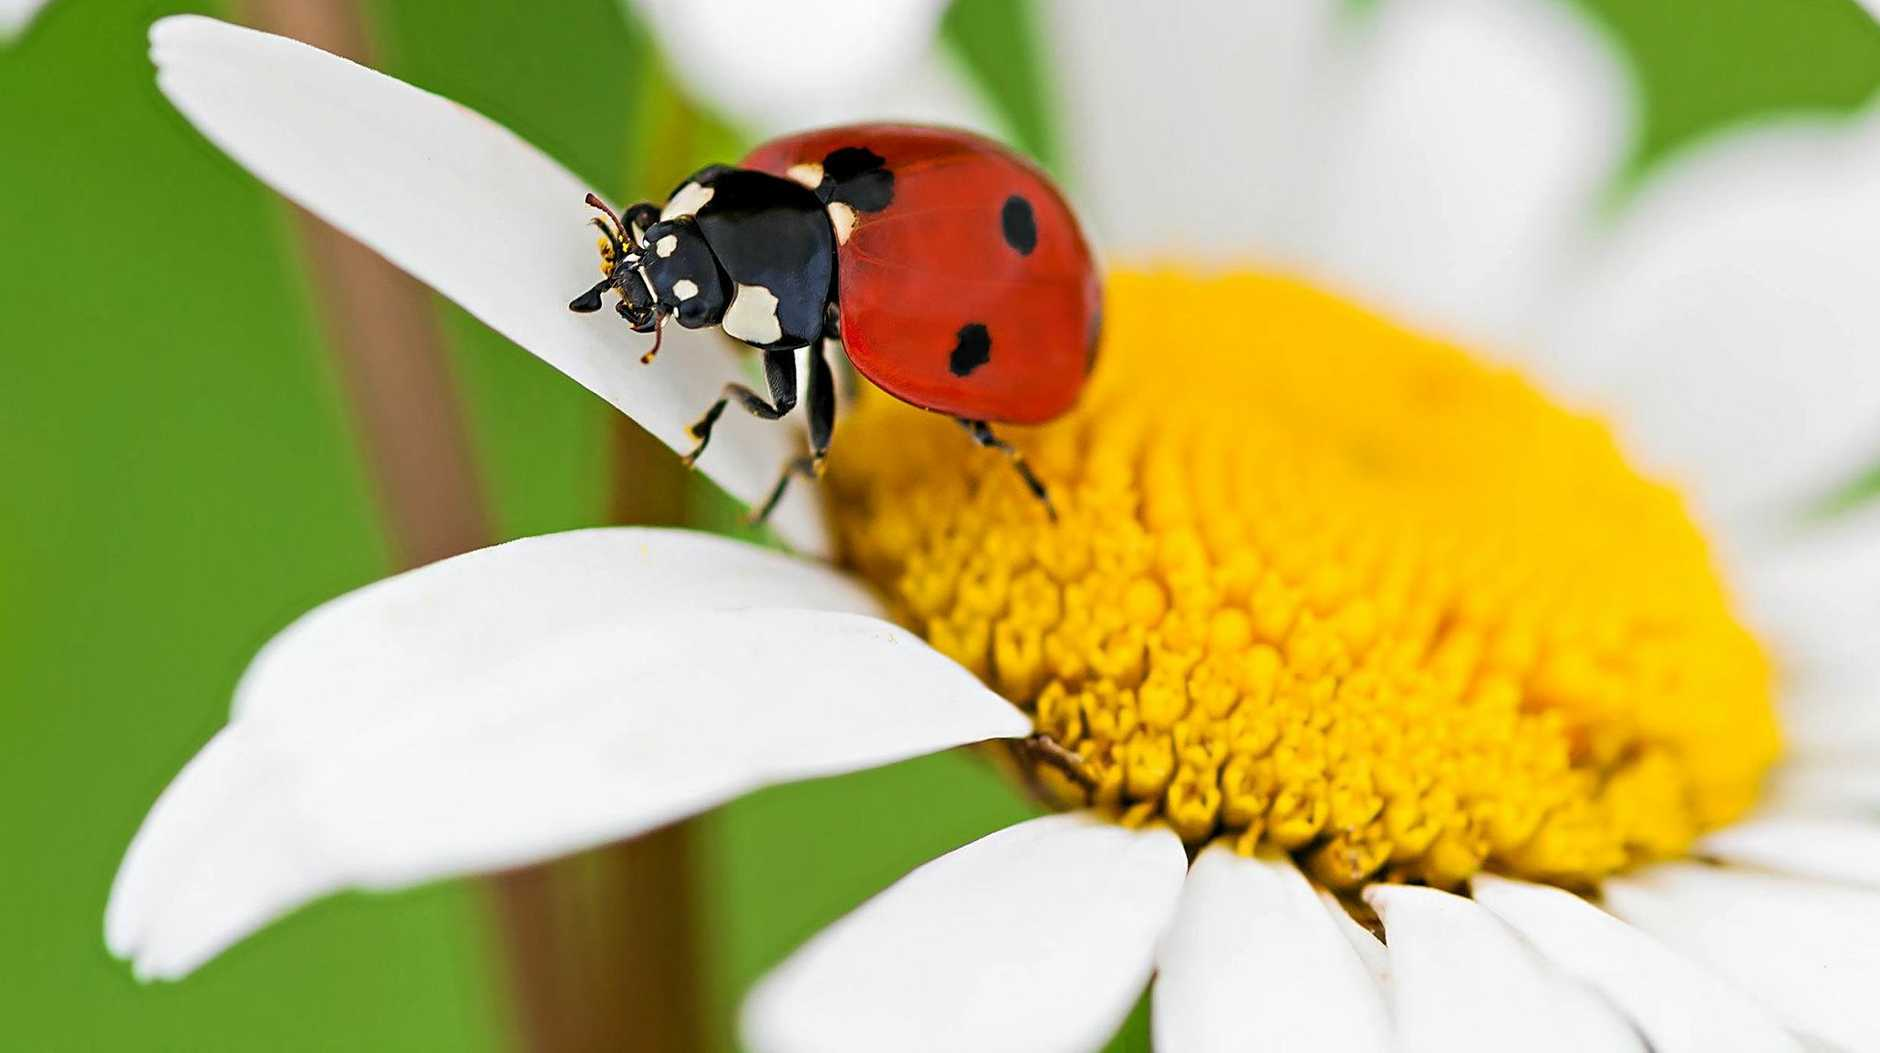 Ladybeetles consume pest insects as food.